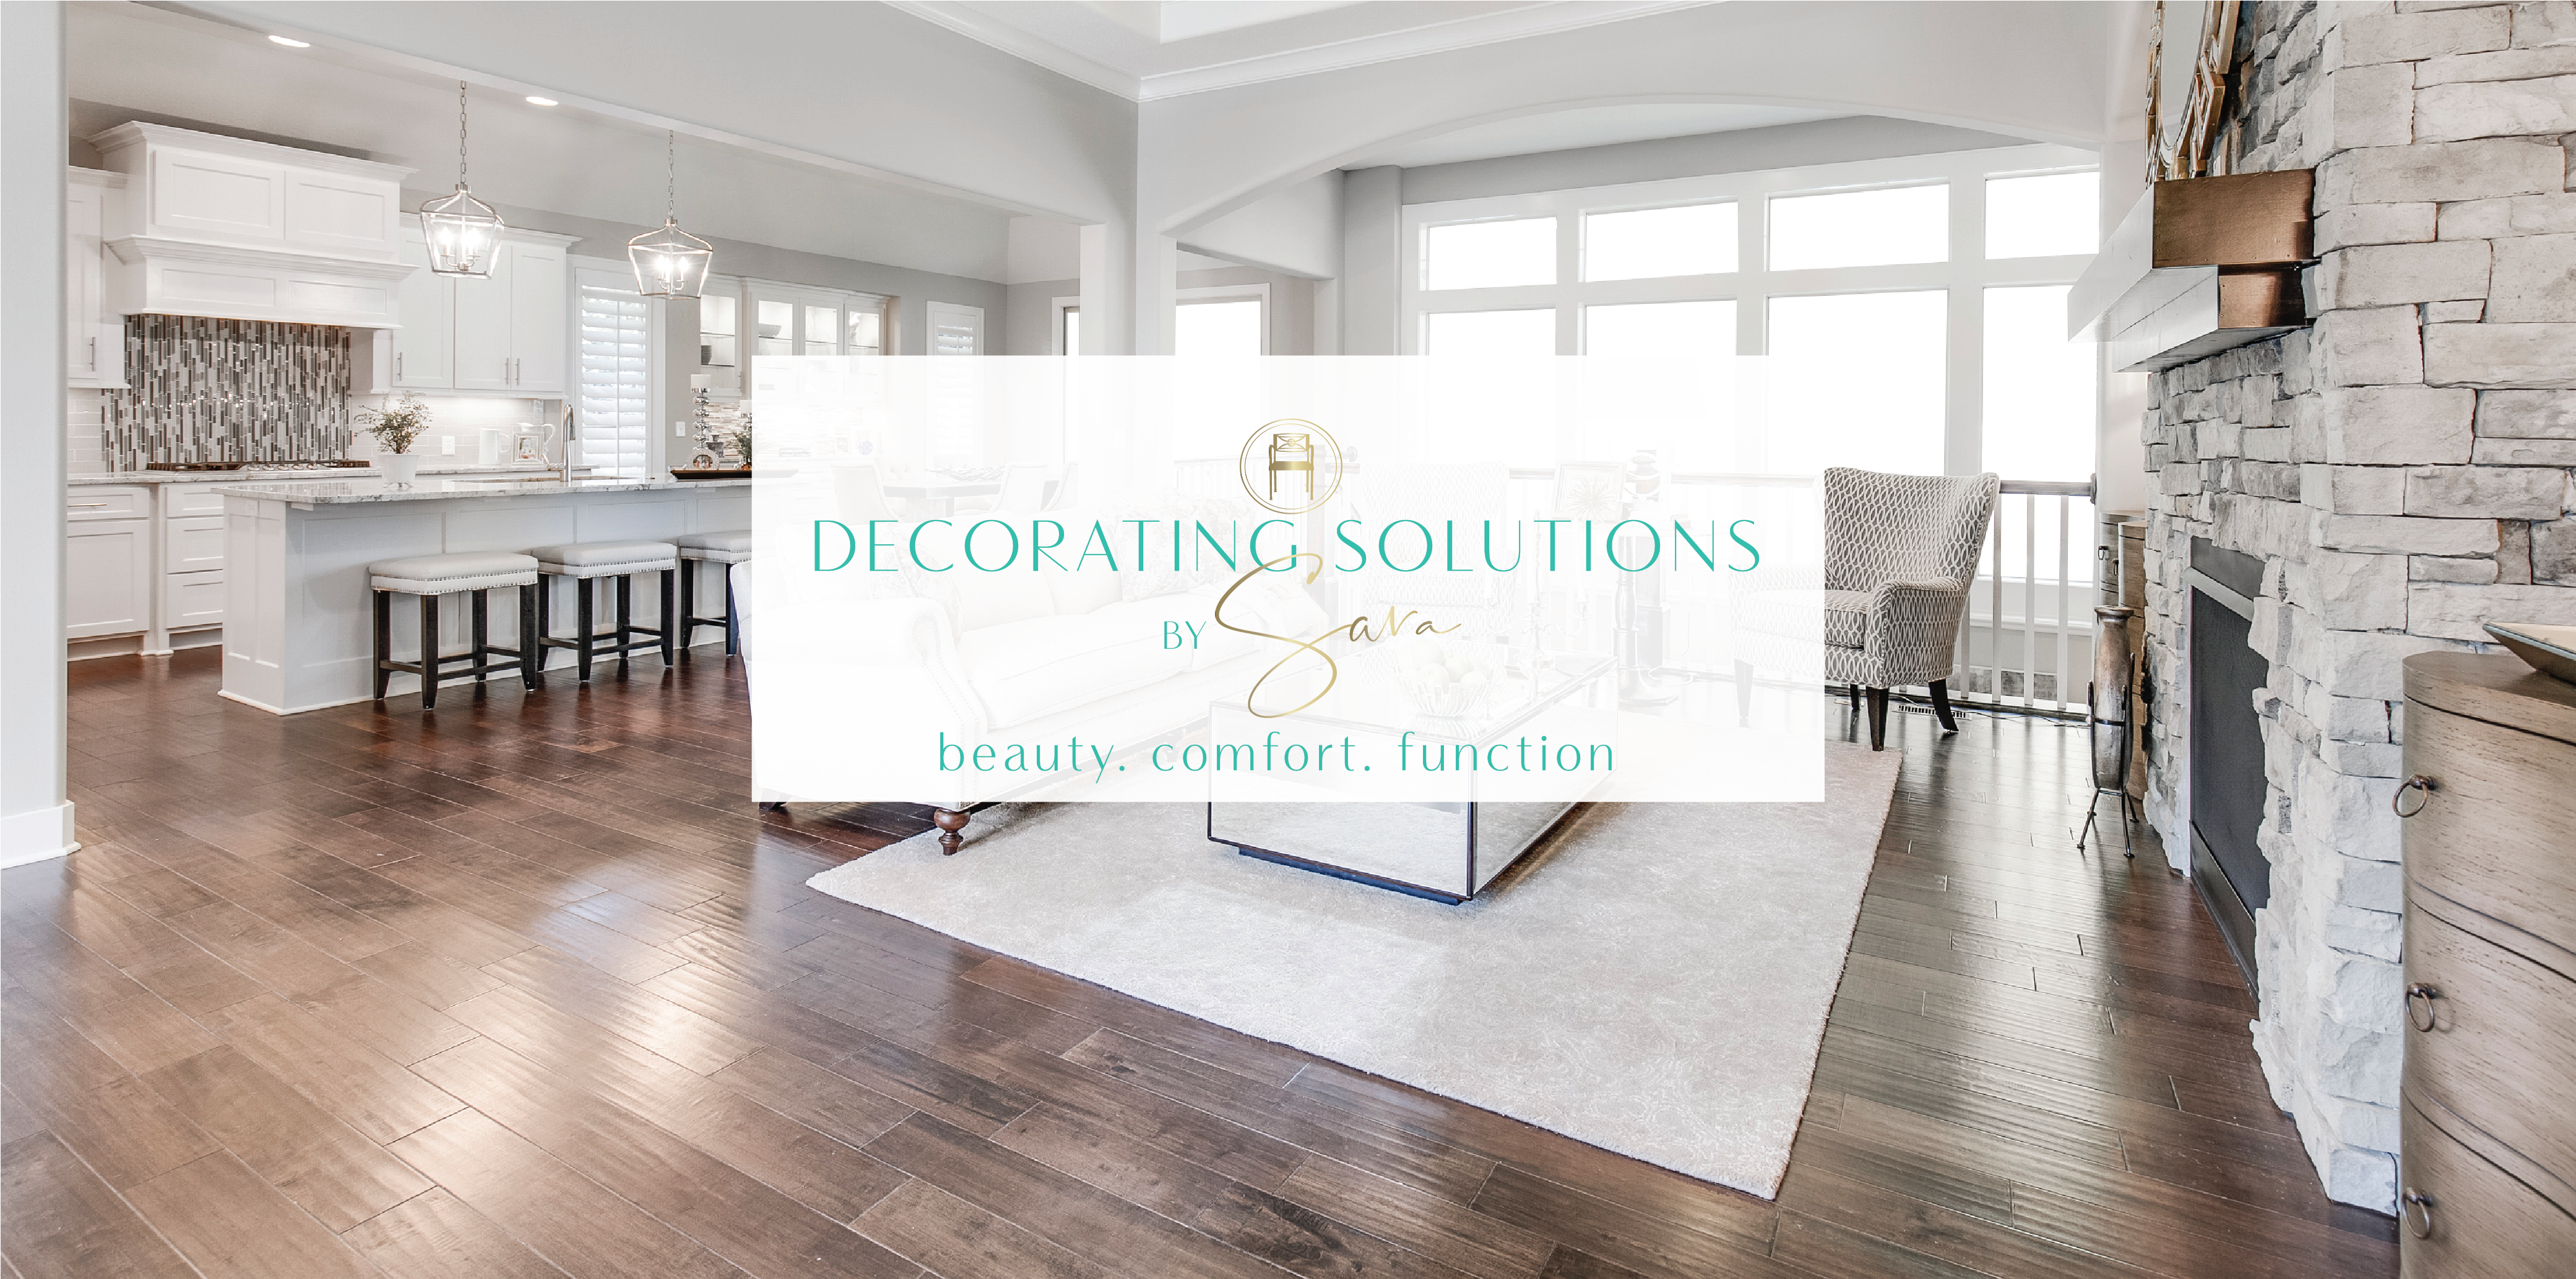 Decorating Solutions by Sara – Interior Design Solutions New ...